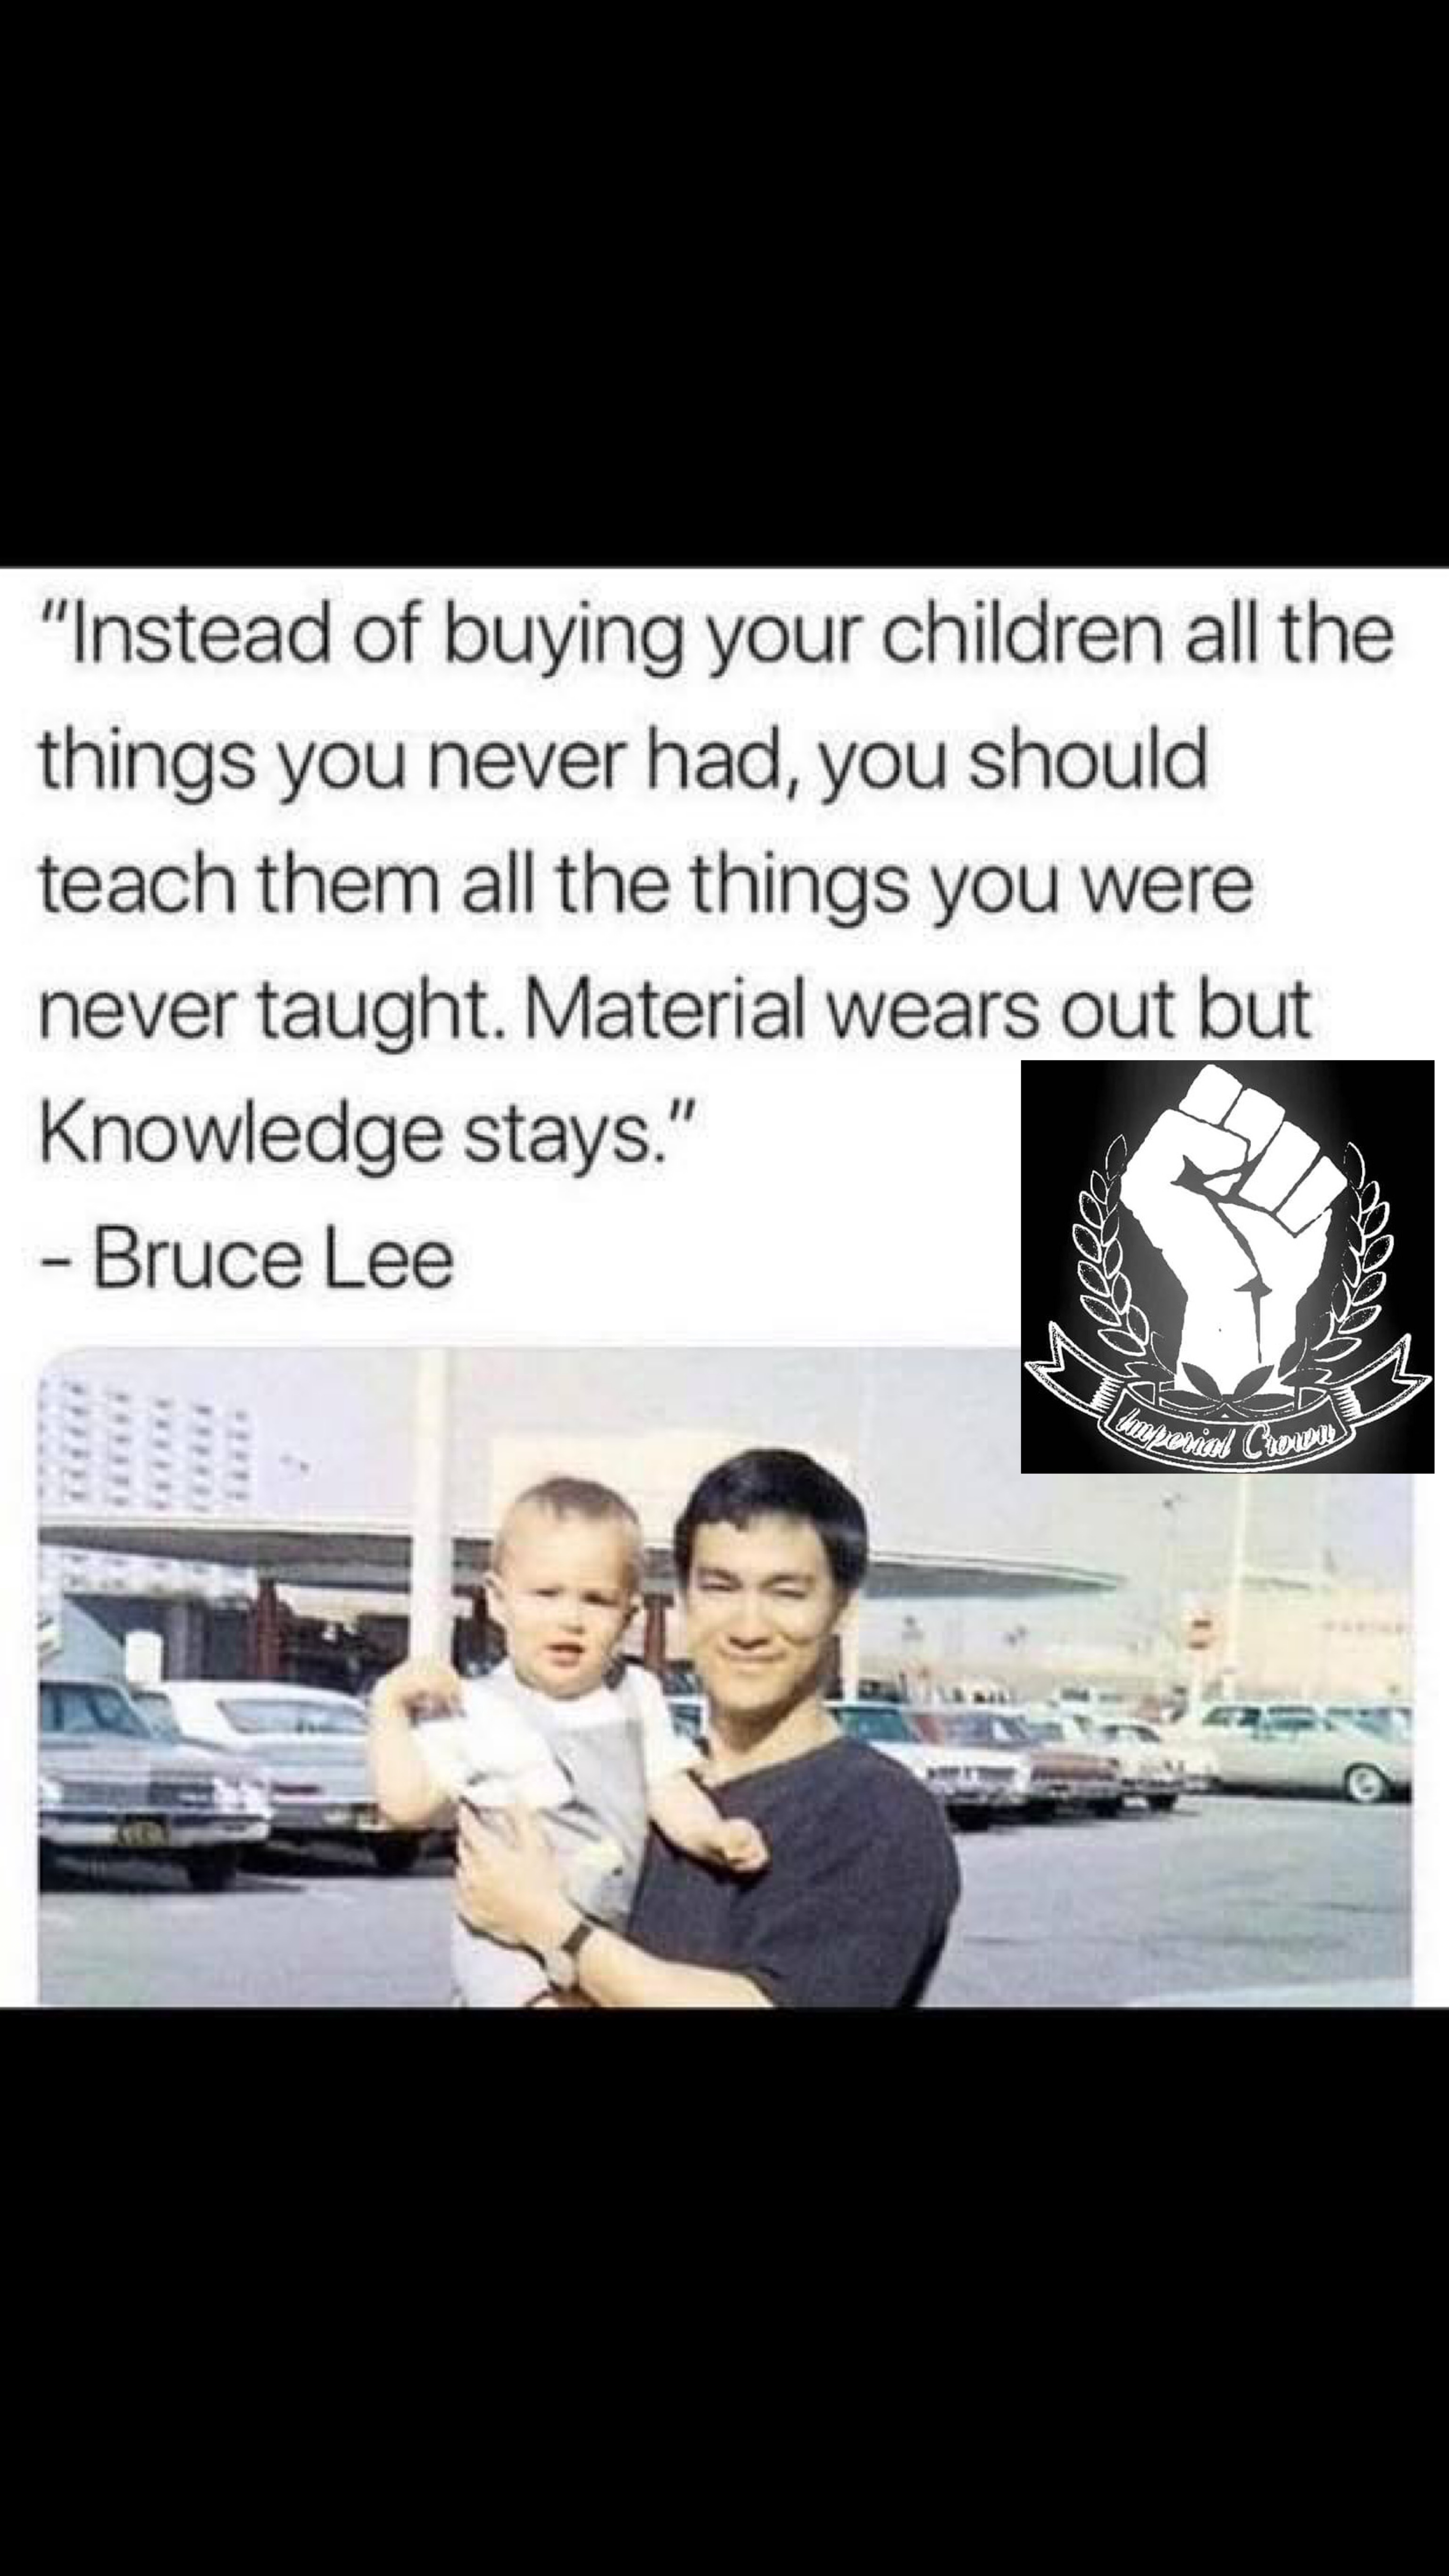 Instead of buying your children all the things you never had…